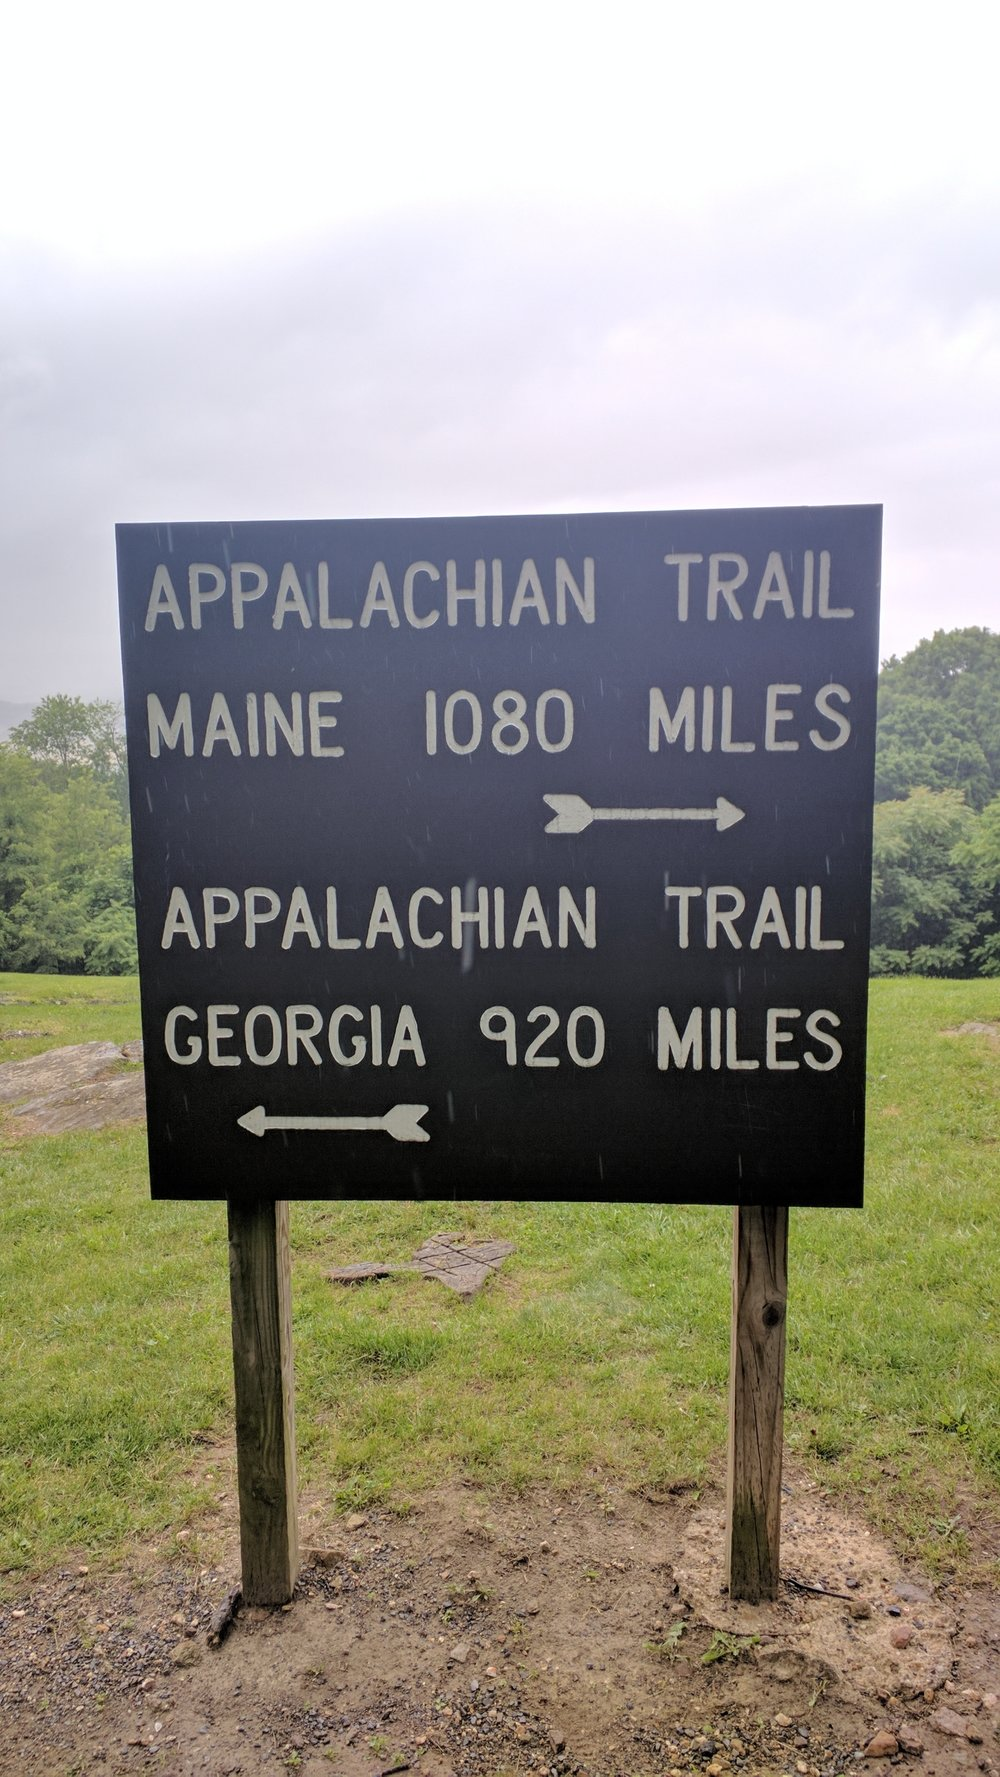 This sign could use an update.  It's only off by about 140 miles.